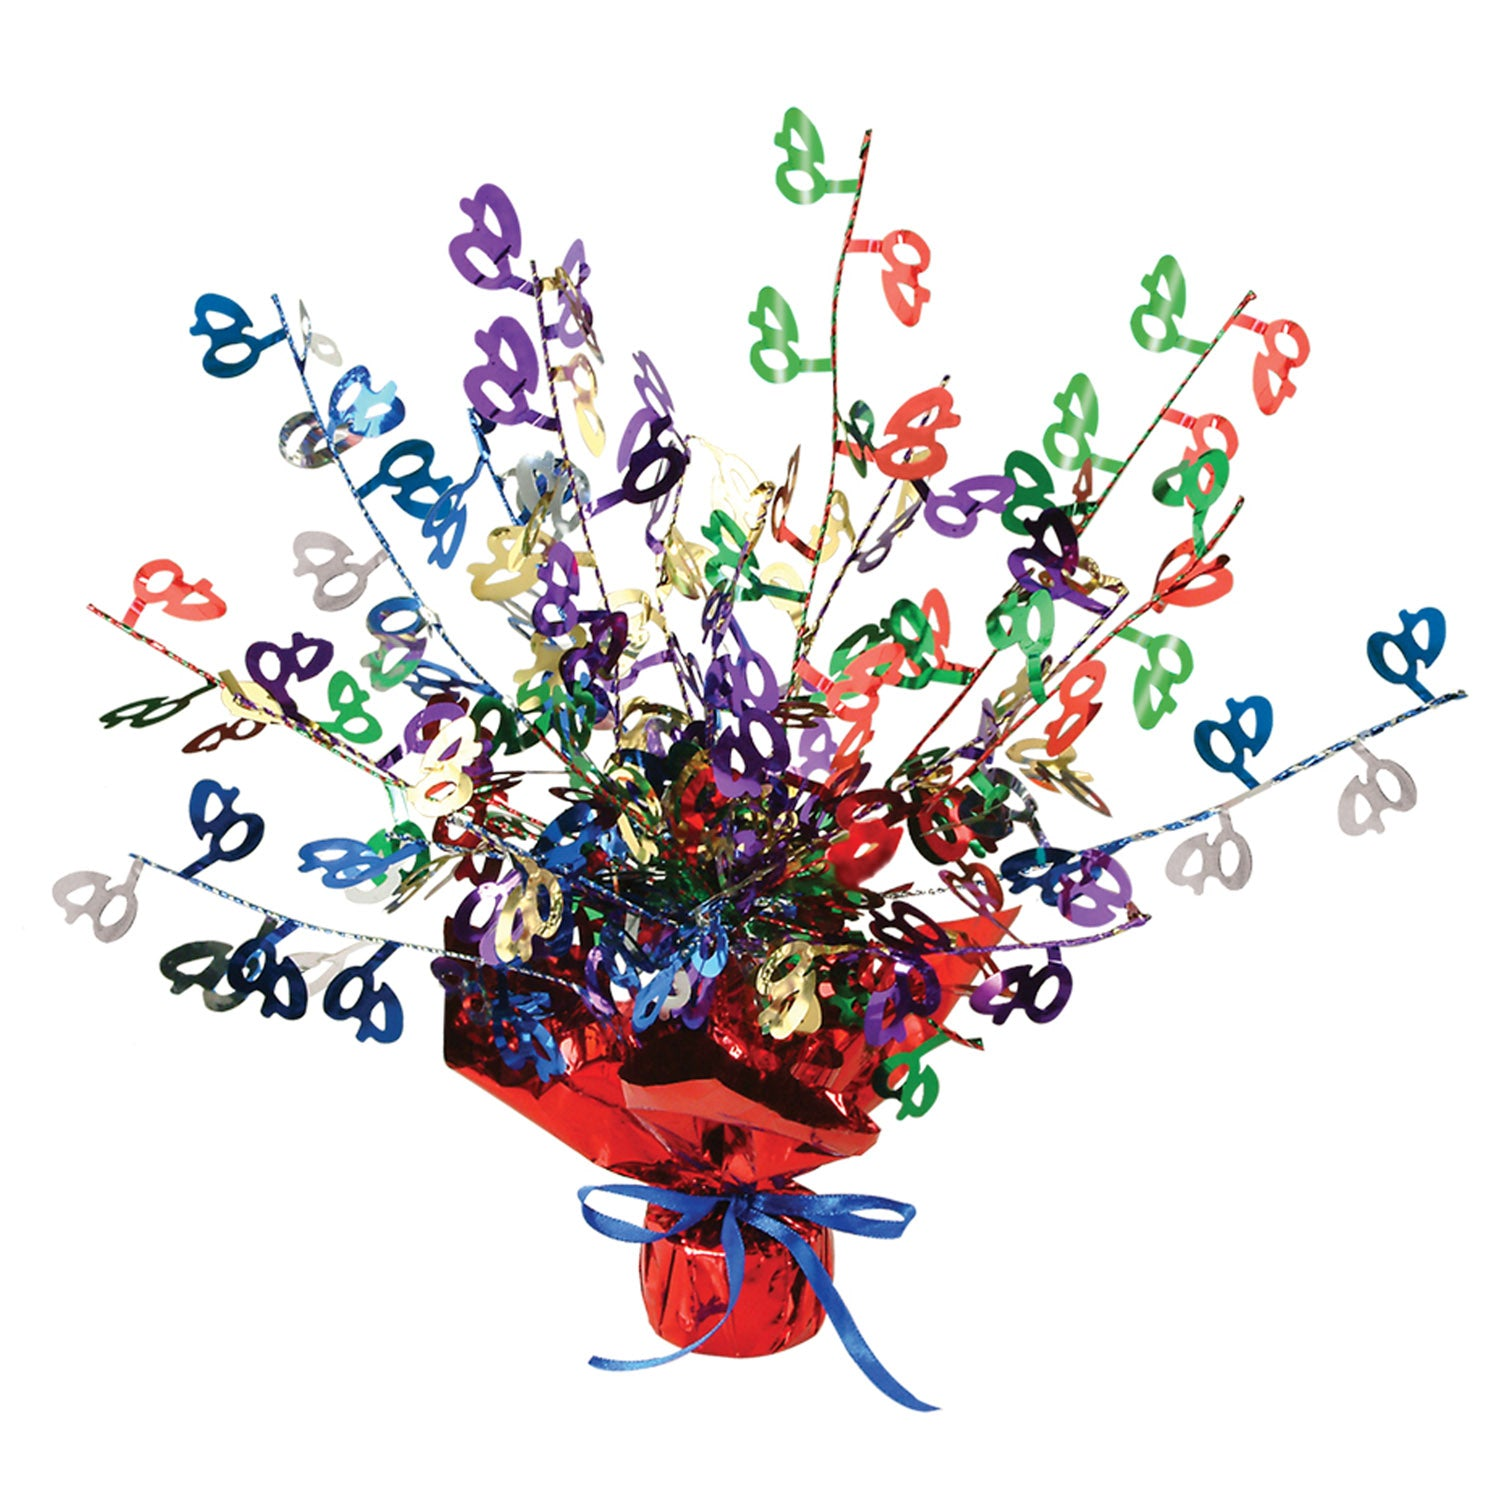 40 Gleam 'N Burst Centerpiece, multi-color by Beistle - 40th Birthday Party Decorations